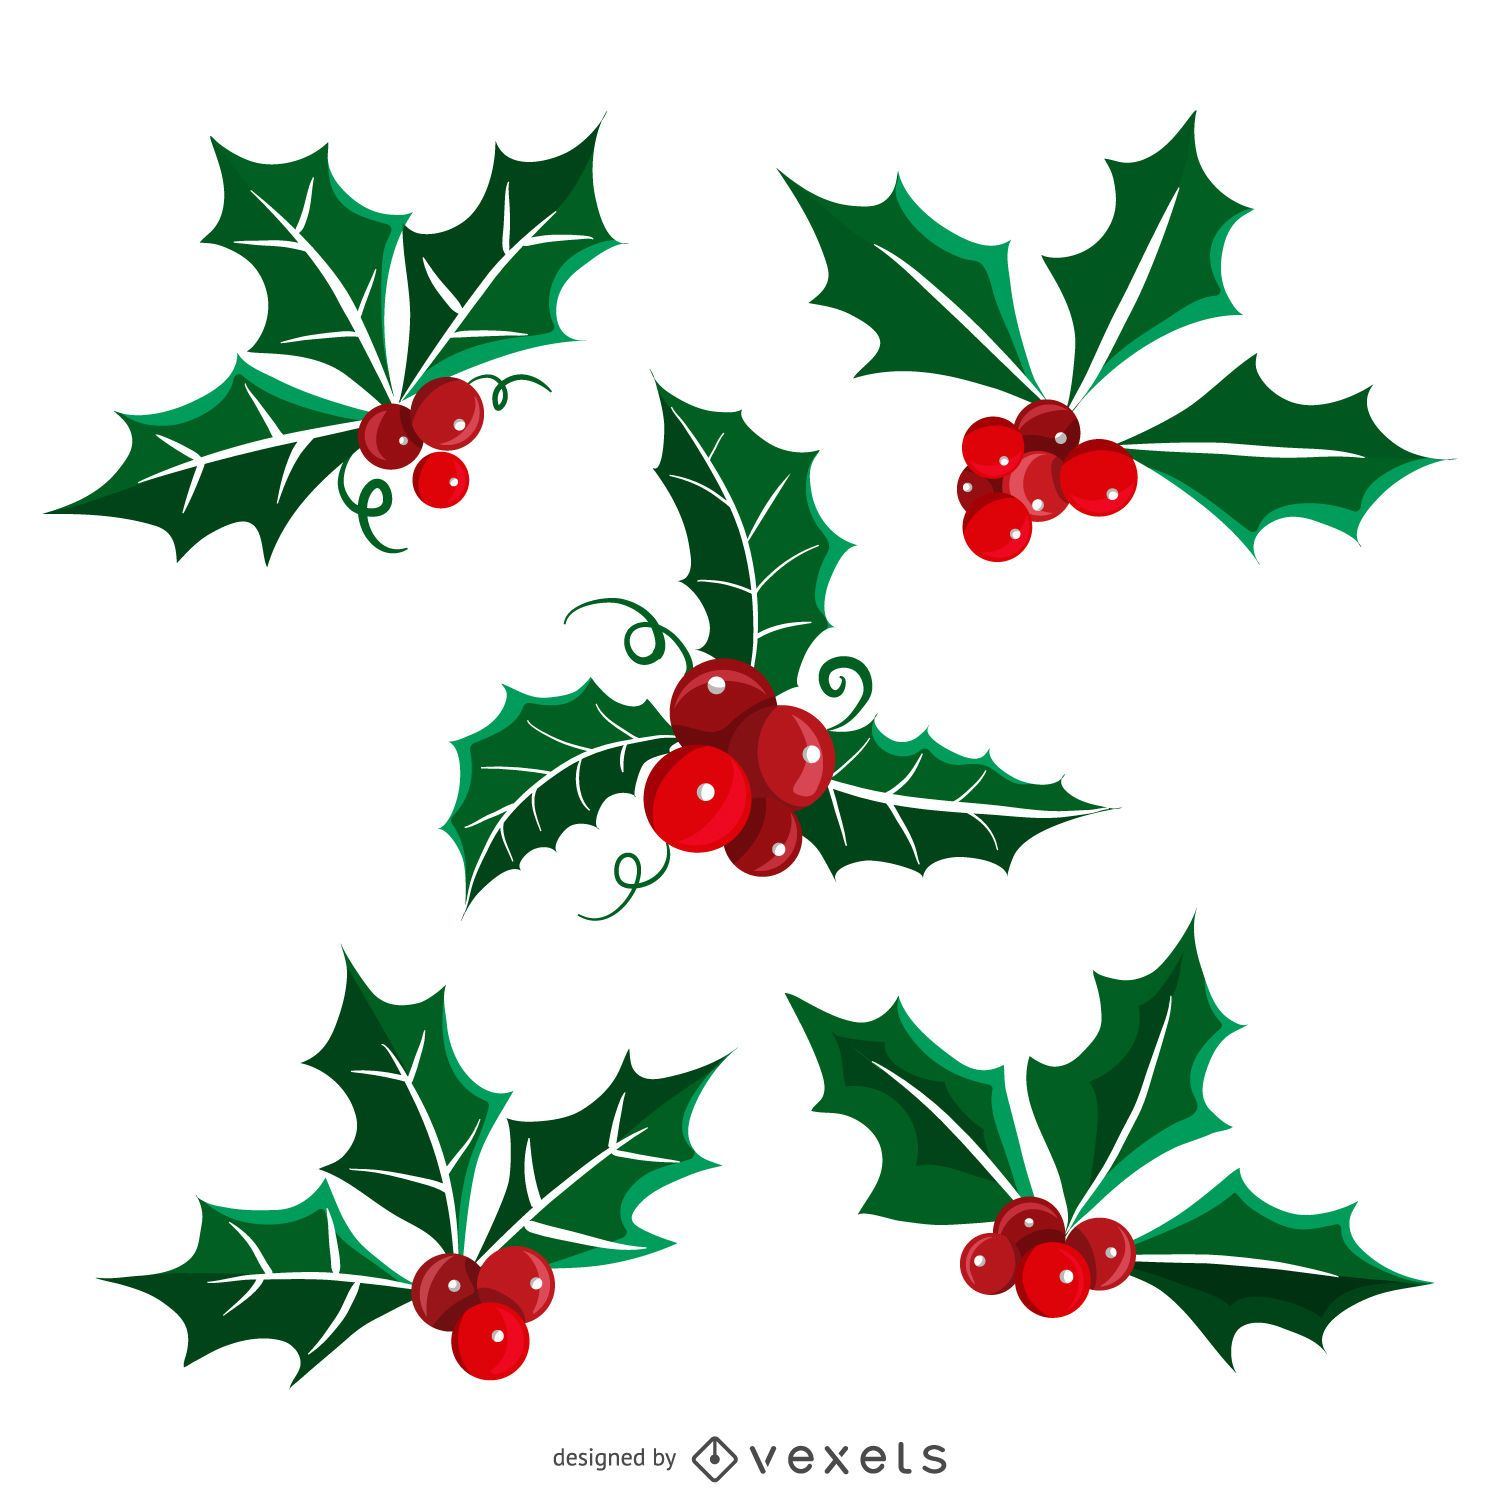 christmas mistletoe illustration set - Mistletoe Christmas